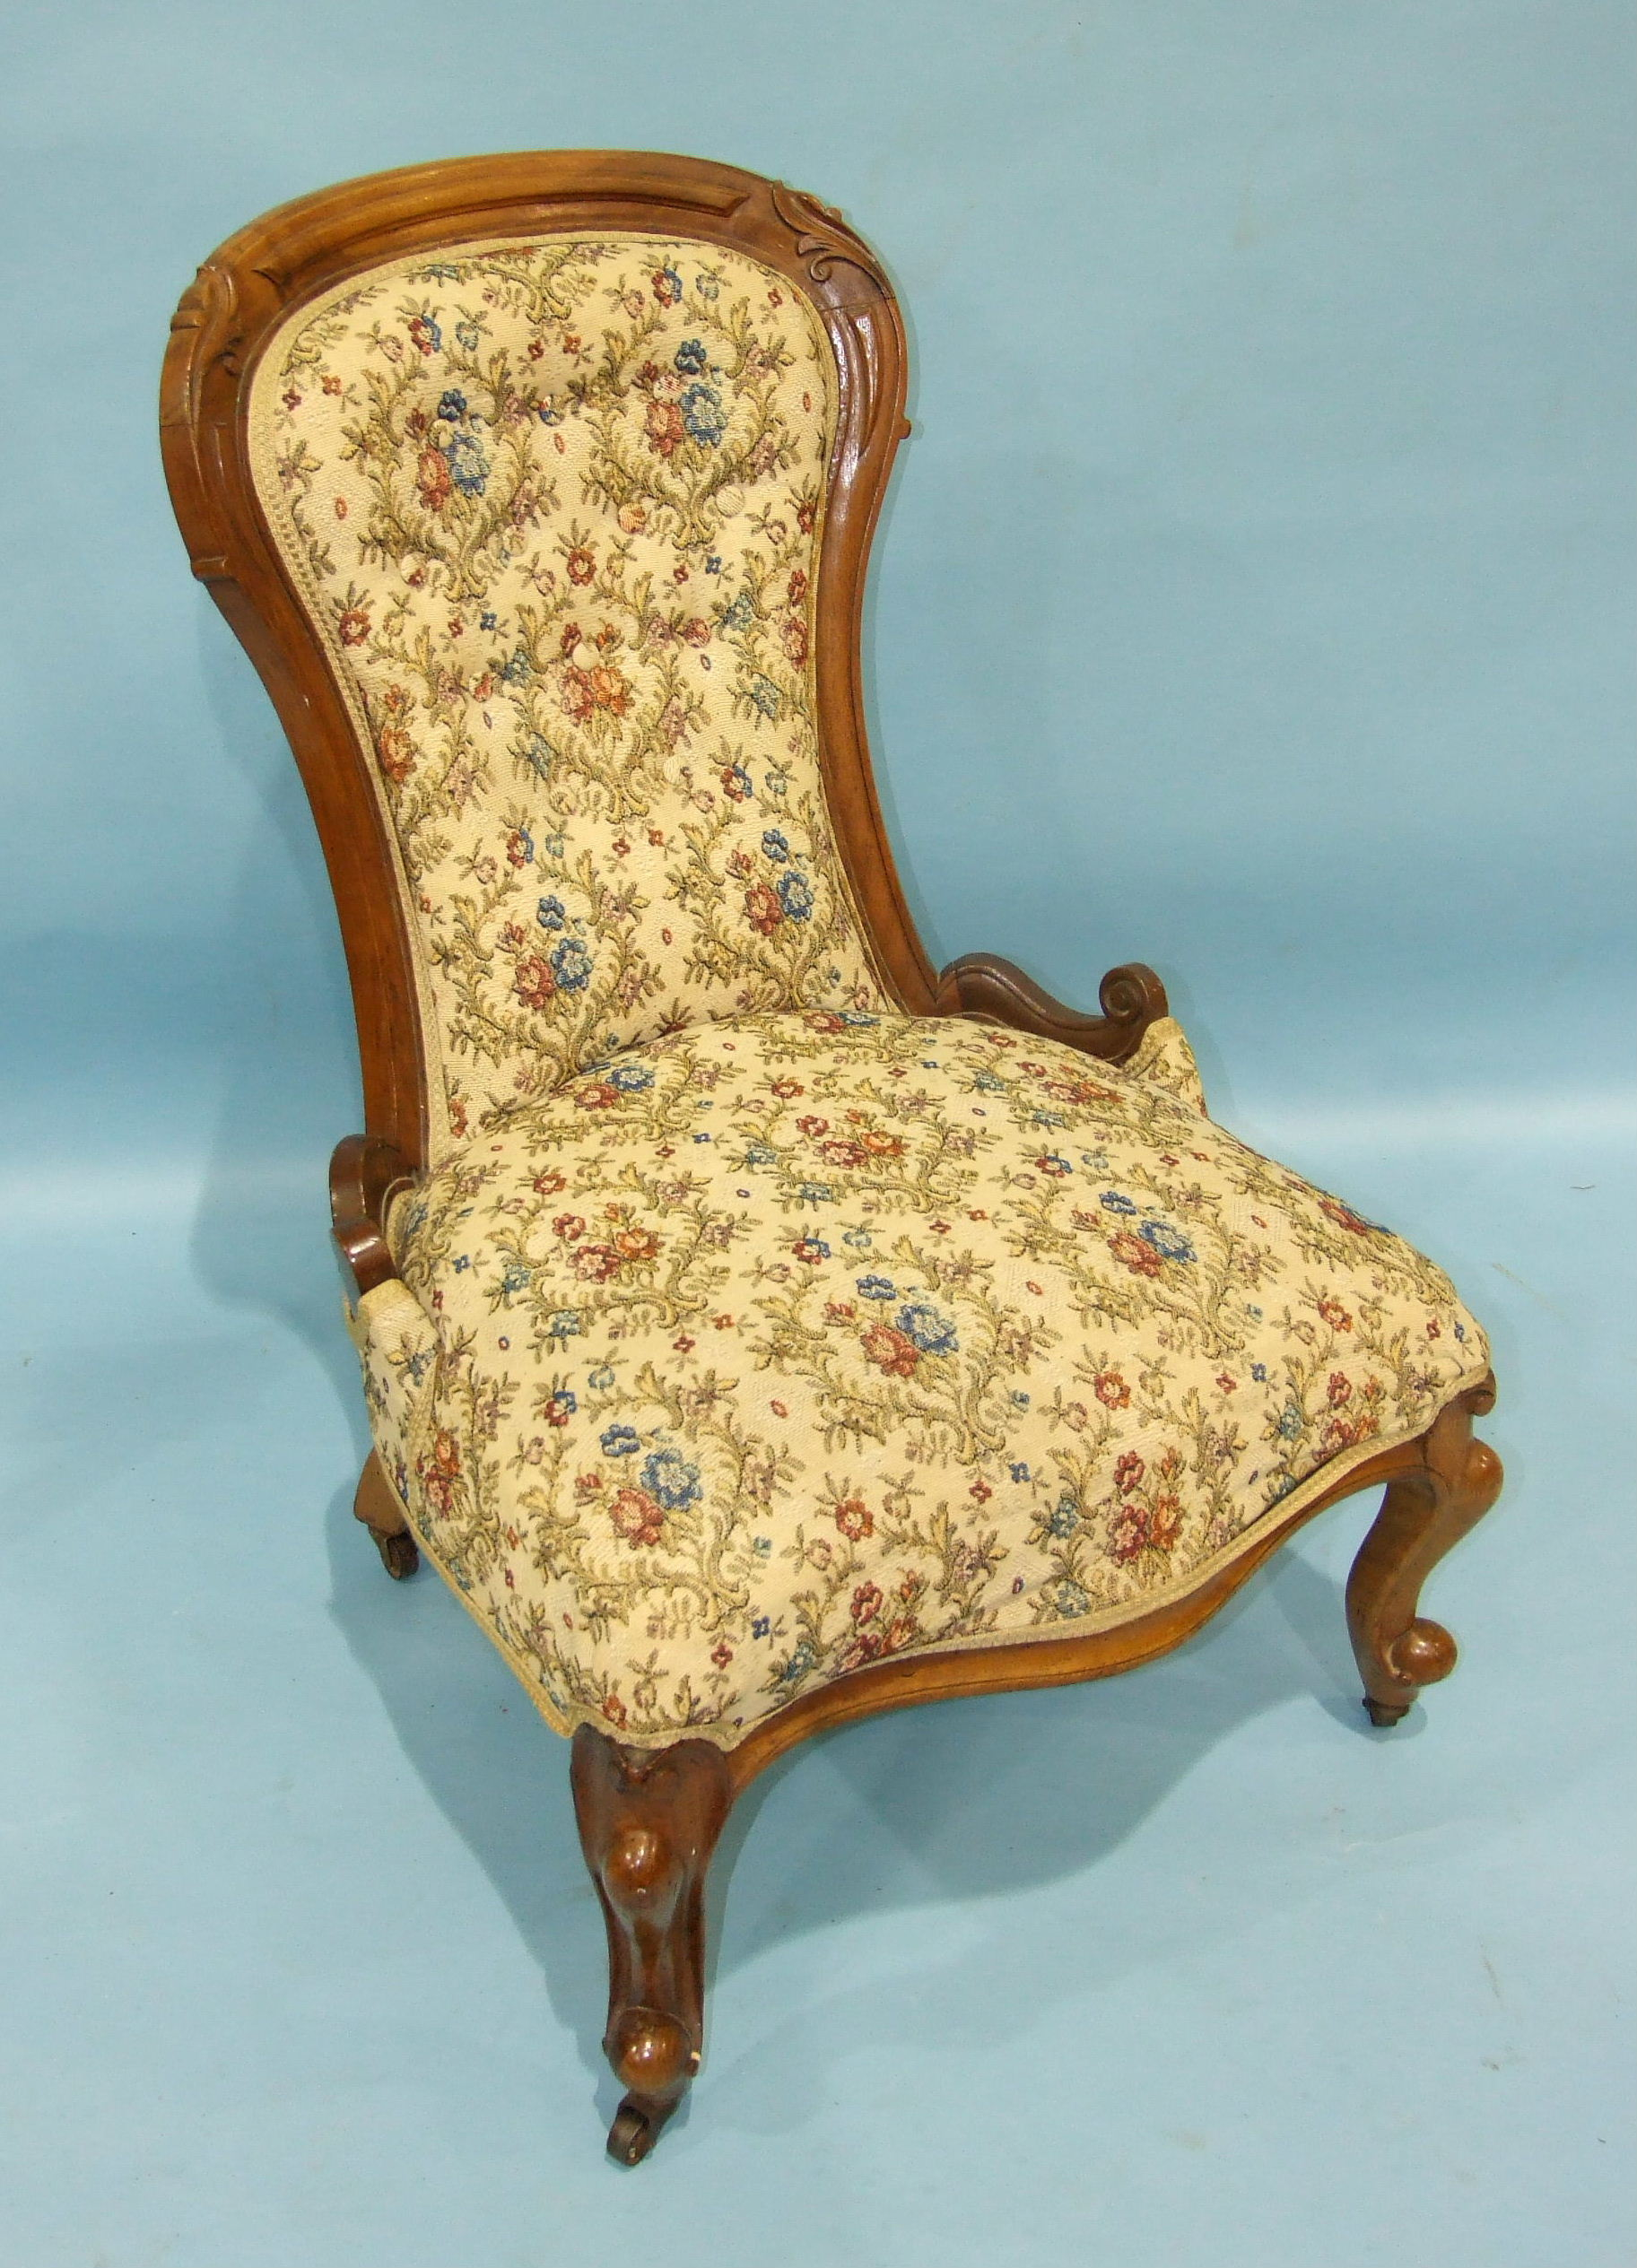 Lot 73 - A late-Victorian walnut nursing chair on carved cabriole legs, similar to lot 72.